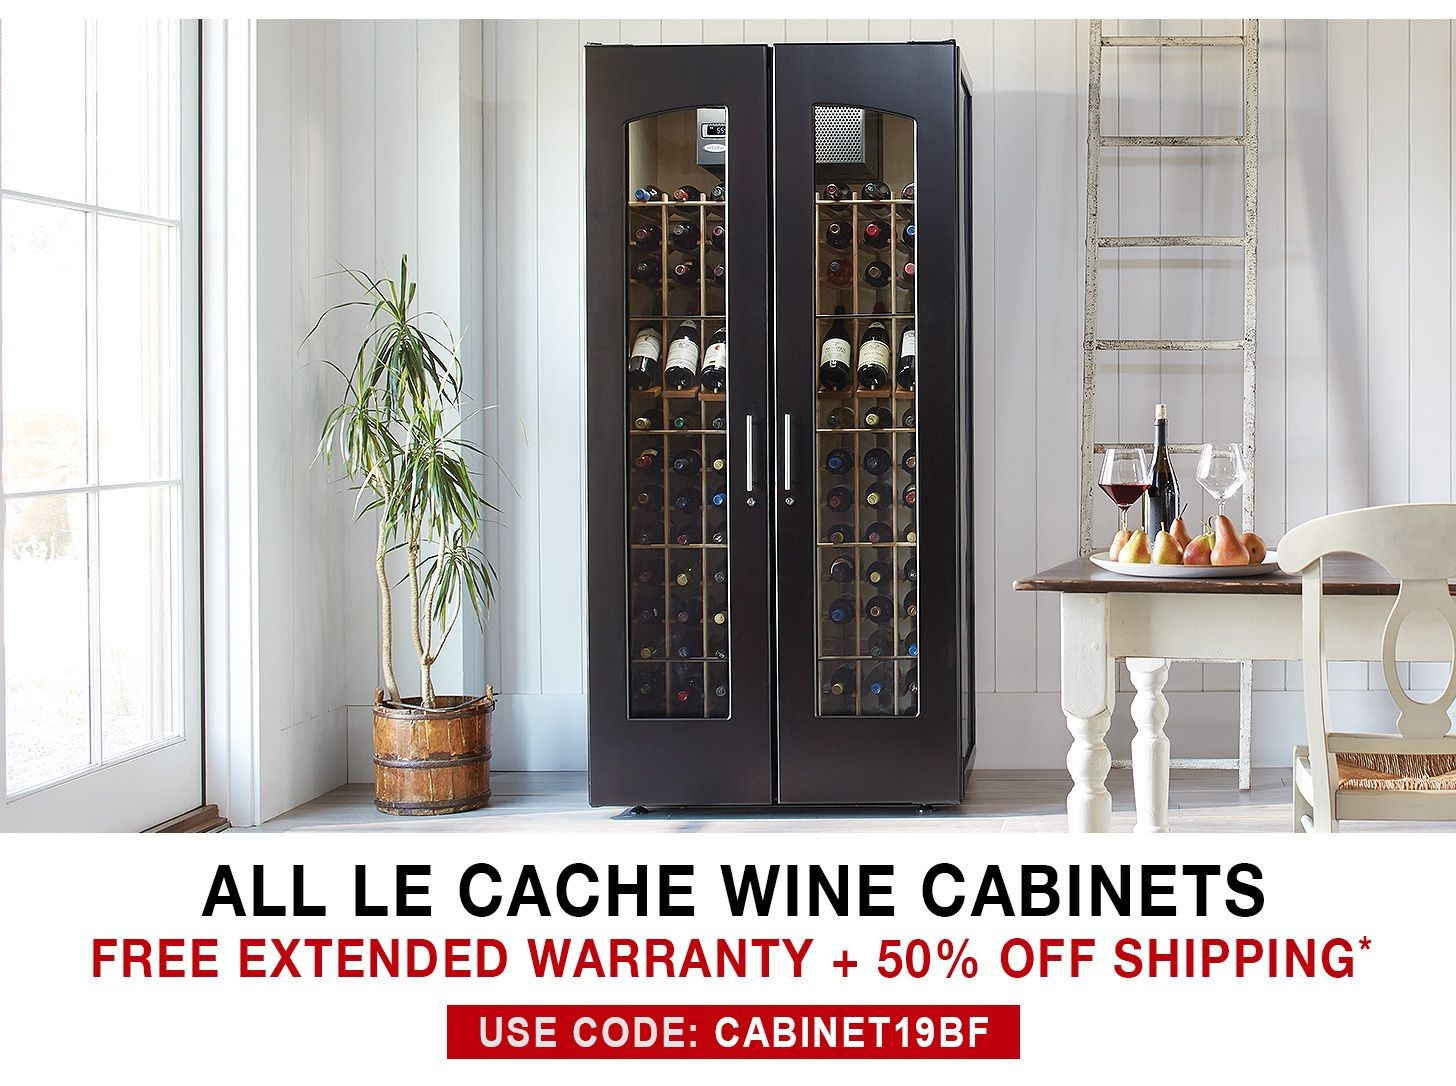 Le Cache Wine Cabinets - Free 3 Year Extended Warranty + 50% Off Shipping - Use Code CABINET19BF